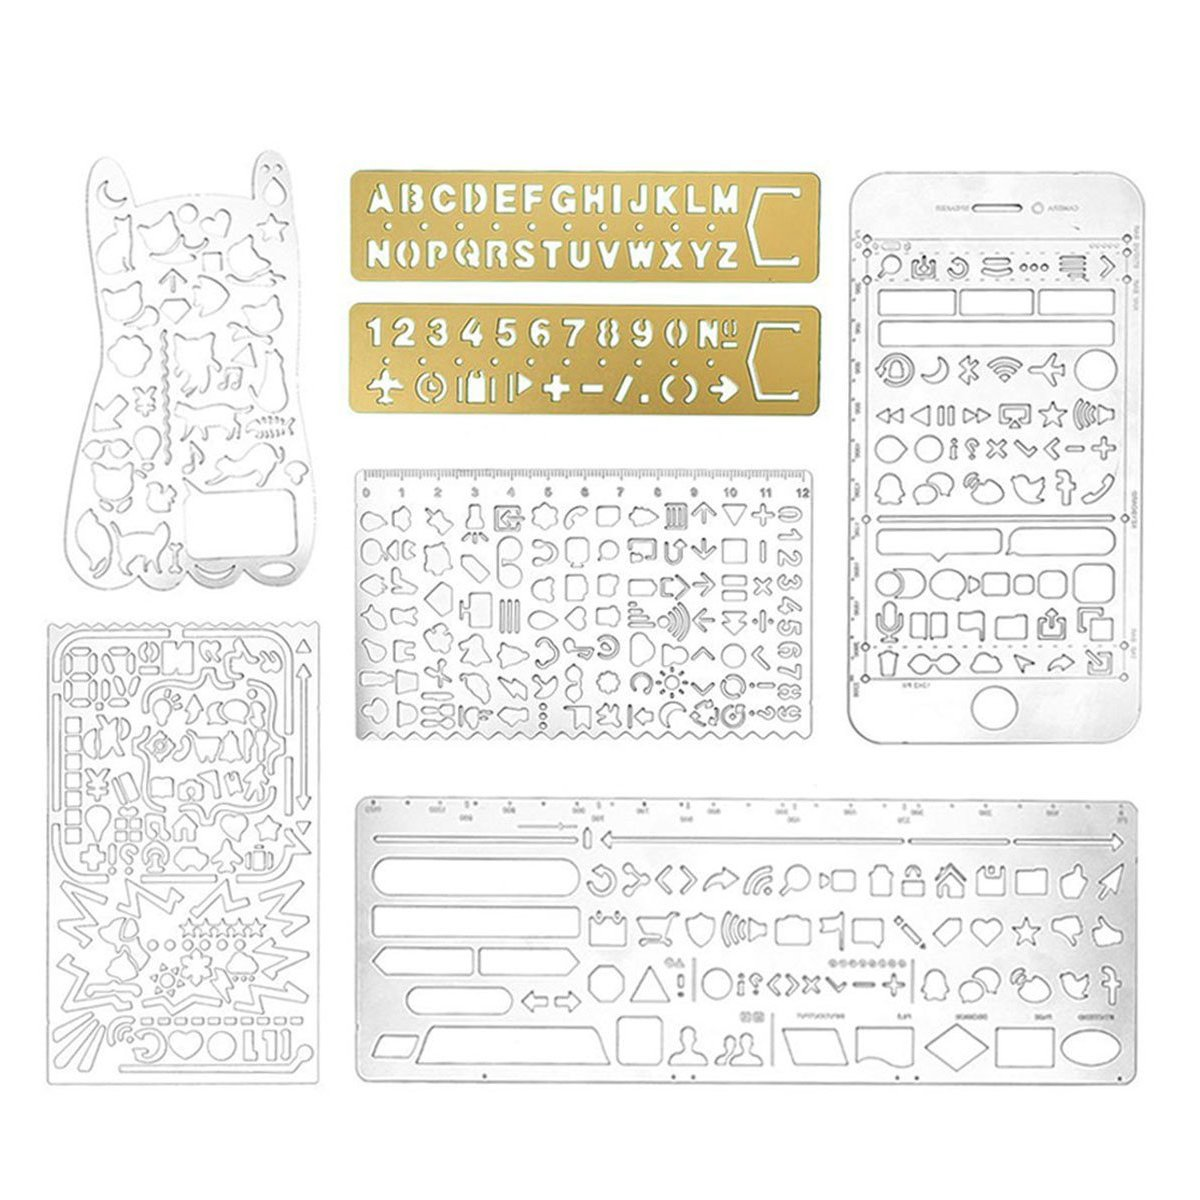 Teenitor Pack of 7 Stainless Steel Drawing Painting Stencils Scale Template Portable Drawing Graffiti for Scrapbooking, Card and Craft Projects 4336892919